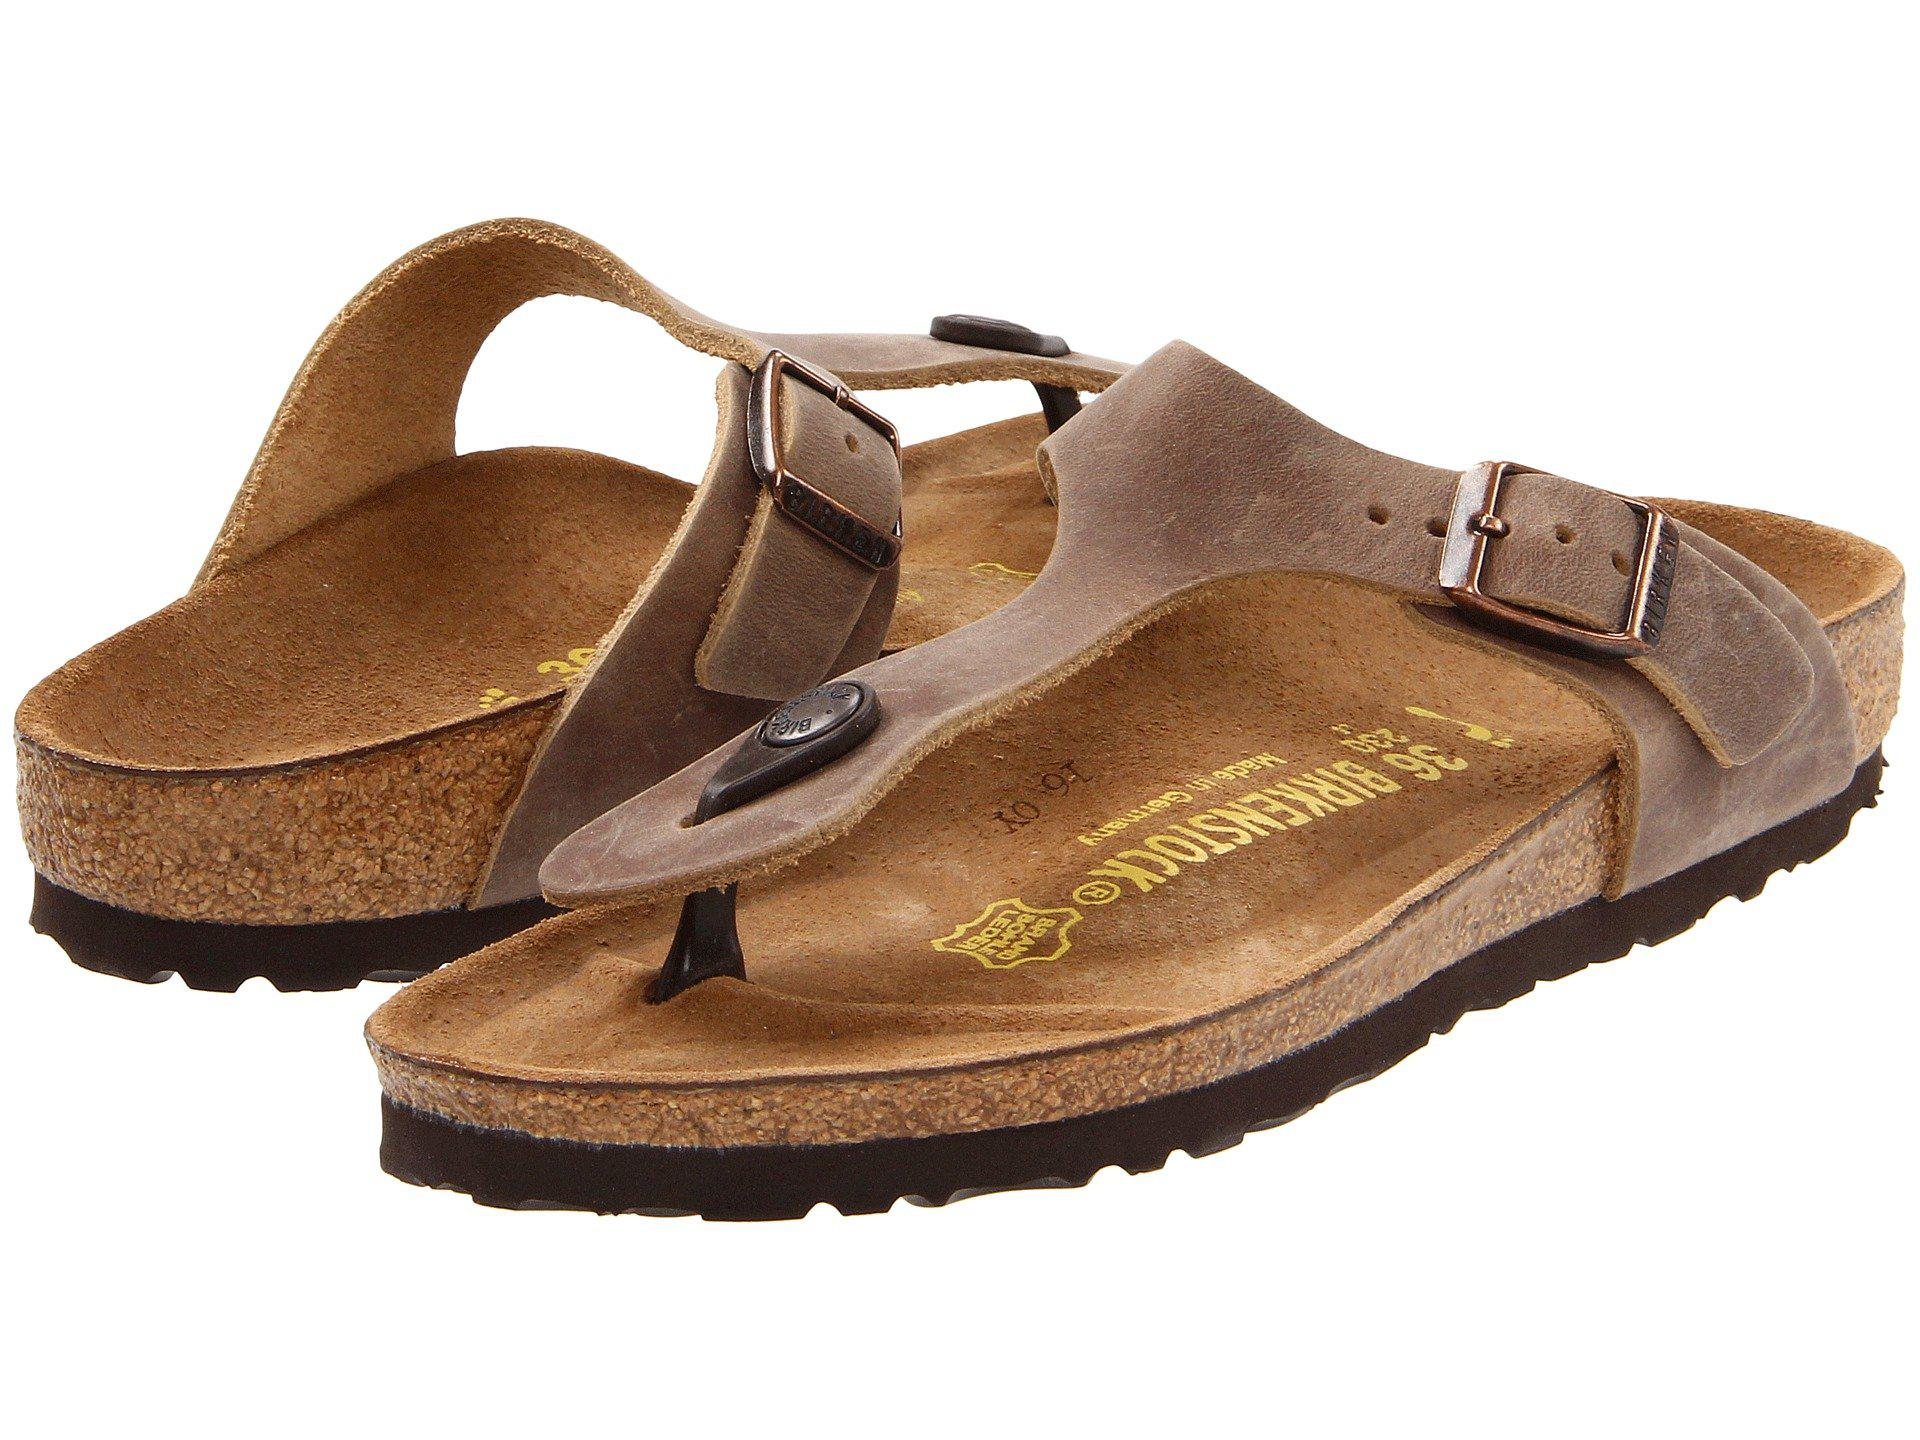 c5969169264 Birkenstock. Brown Gizeh Oiled Leather (tobacco Oiled Leather) Women s  Sandals